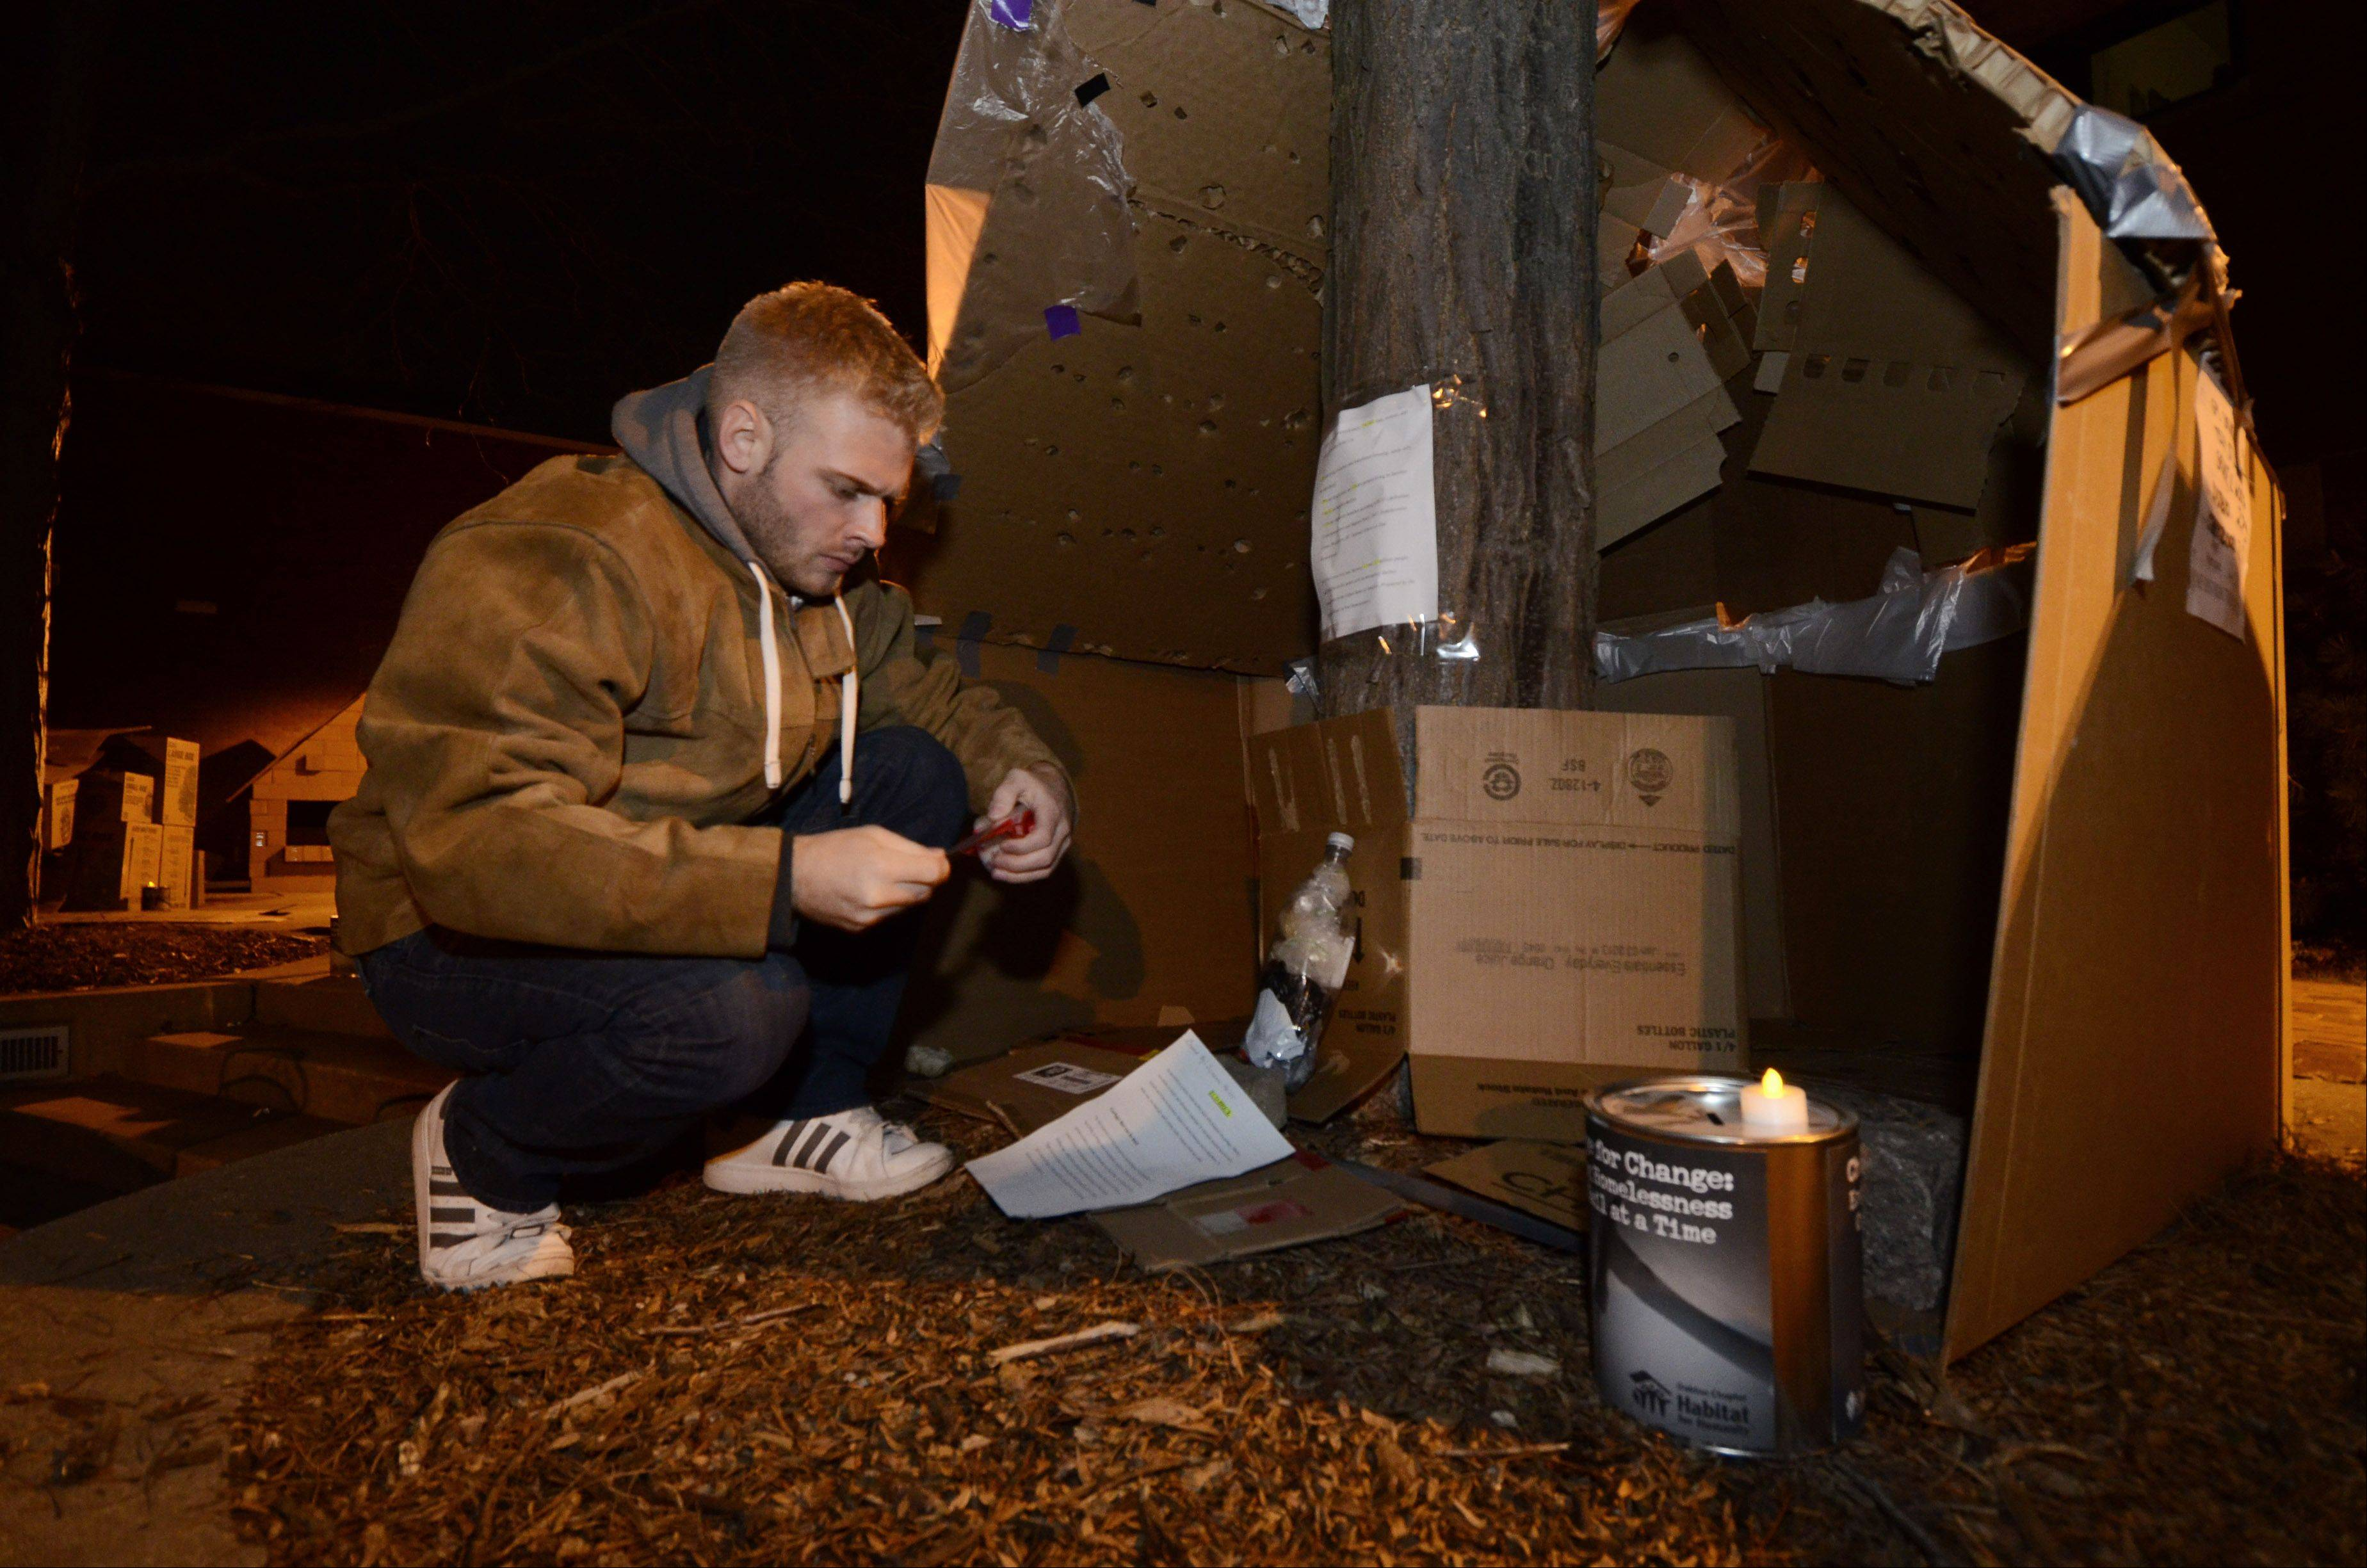 Oakton Community College student Andrew Ellis of Chicago prepares his cardboard dwelling for an overnight stay in the courtyard of Oakton Community College's Des Plaines campus. The college's chapter of Habitat for Humanity sponsored the event to raise awareness for the plight of the homeless.